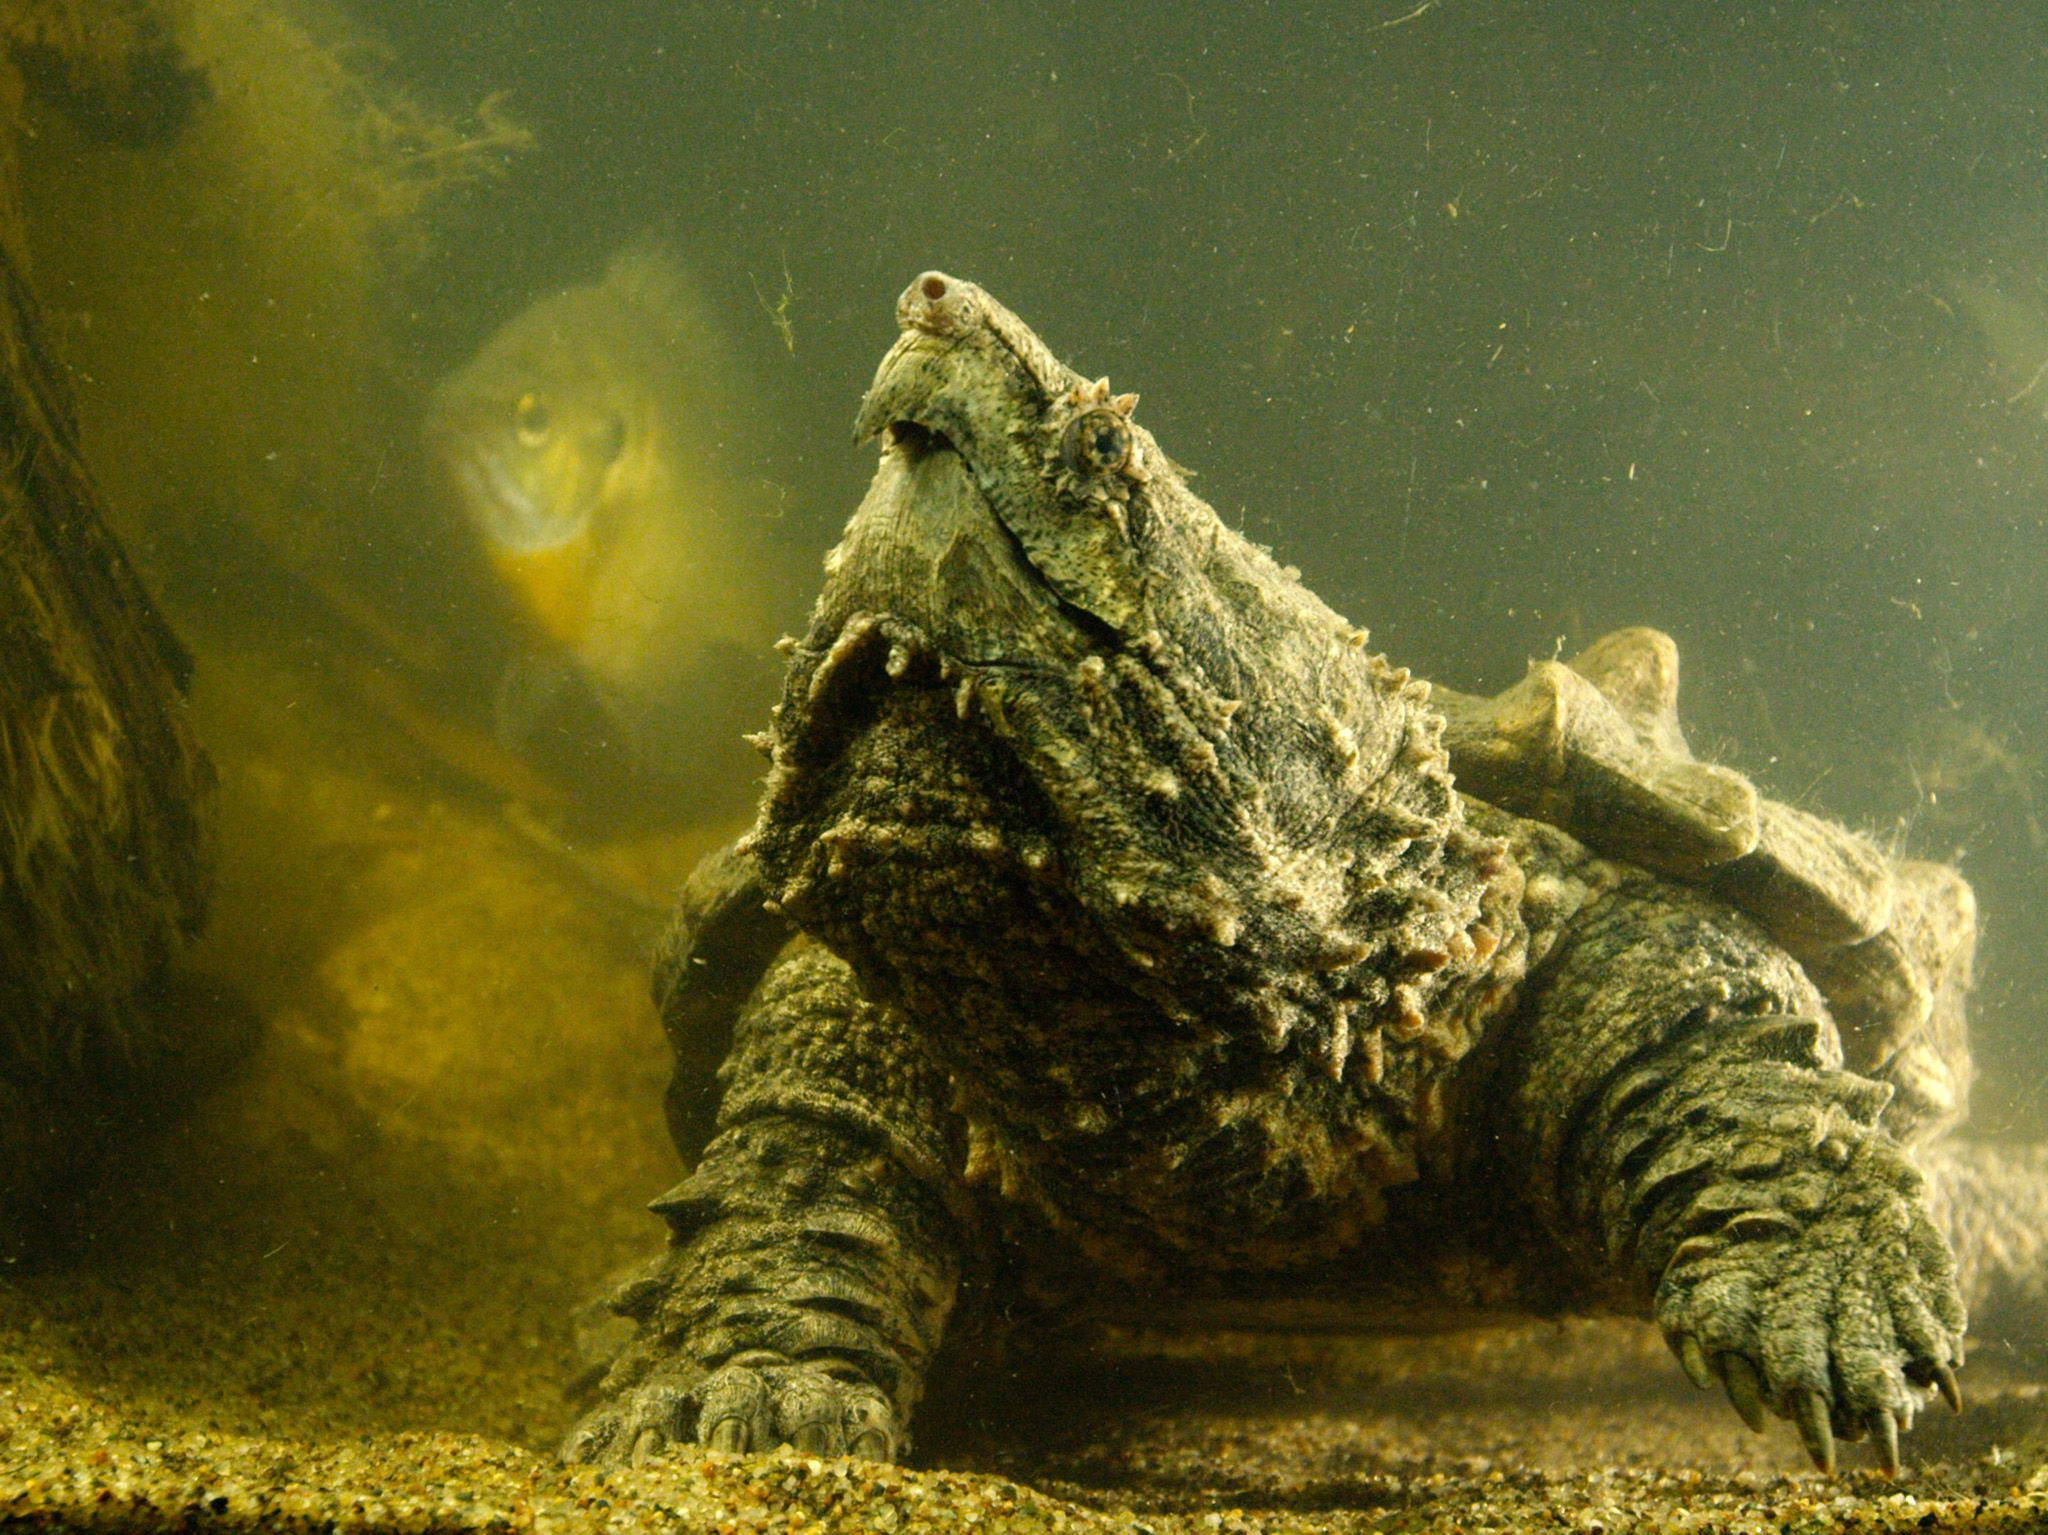 Wildlife Discovery Center, IL:  An Alligator Snapping Turtle looking to capture prey.  This... [Photo of the day - March 2018]